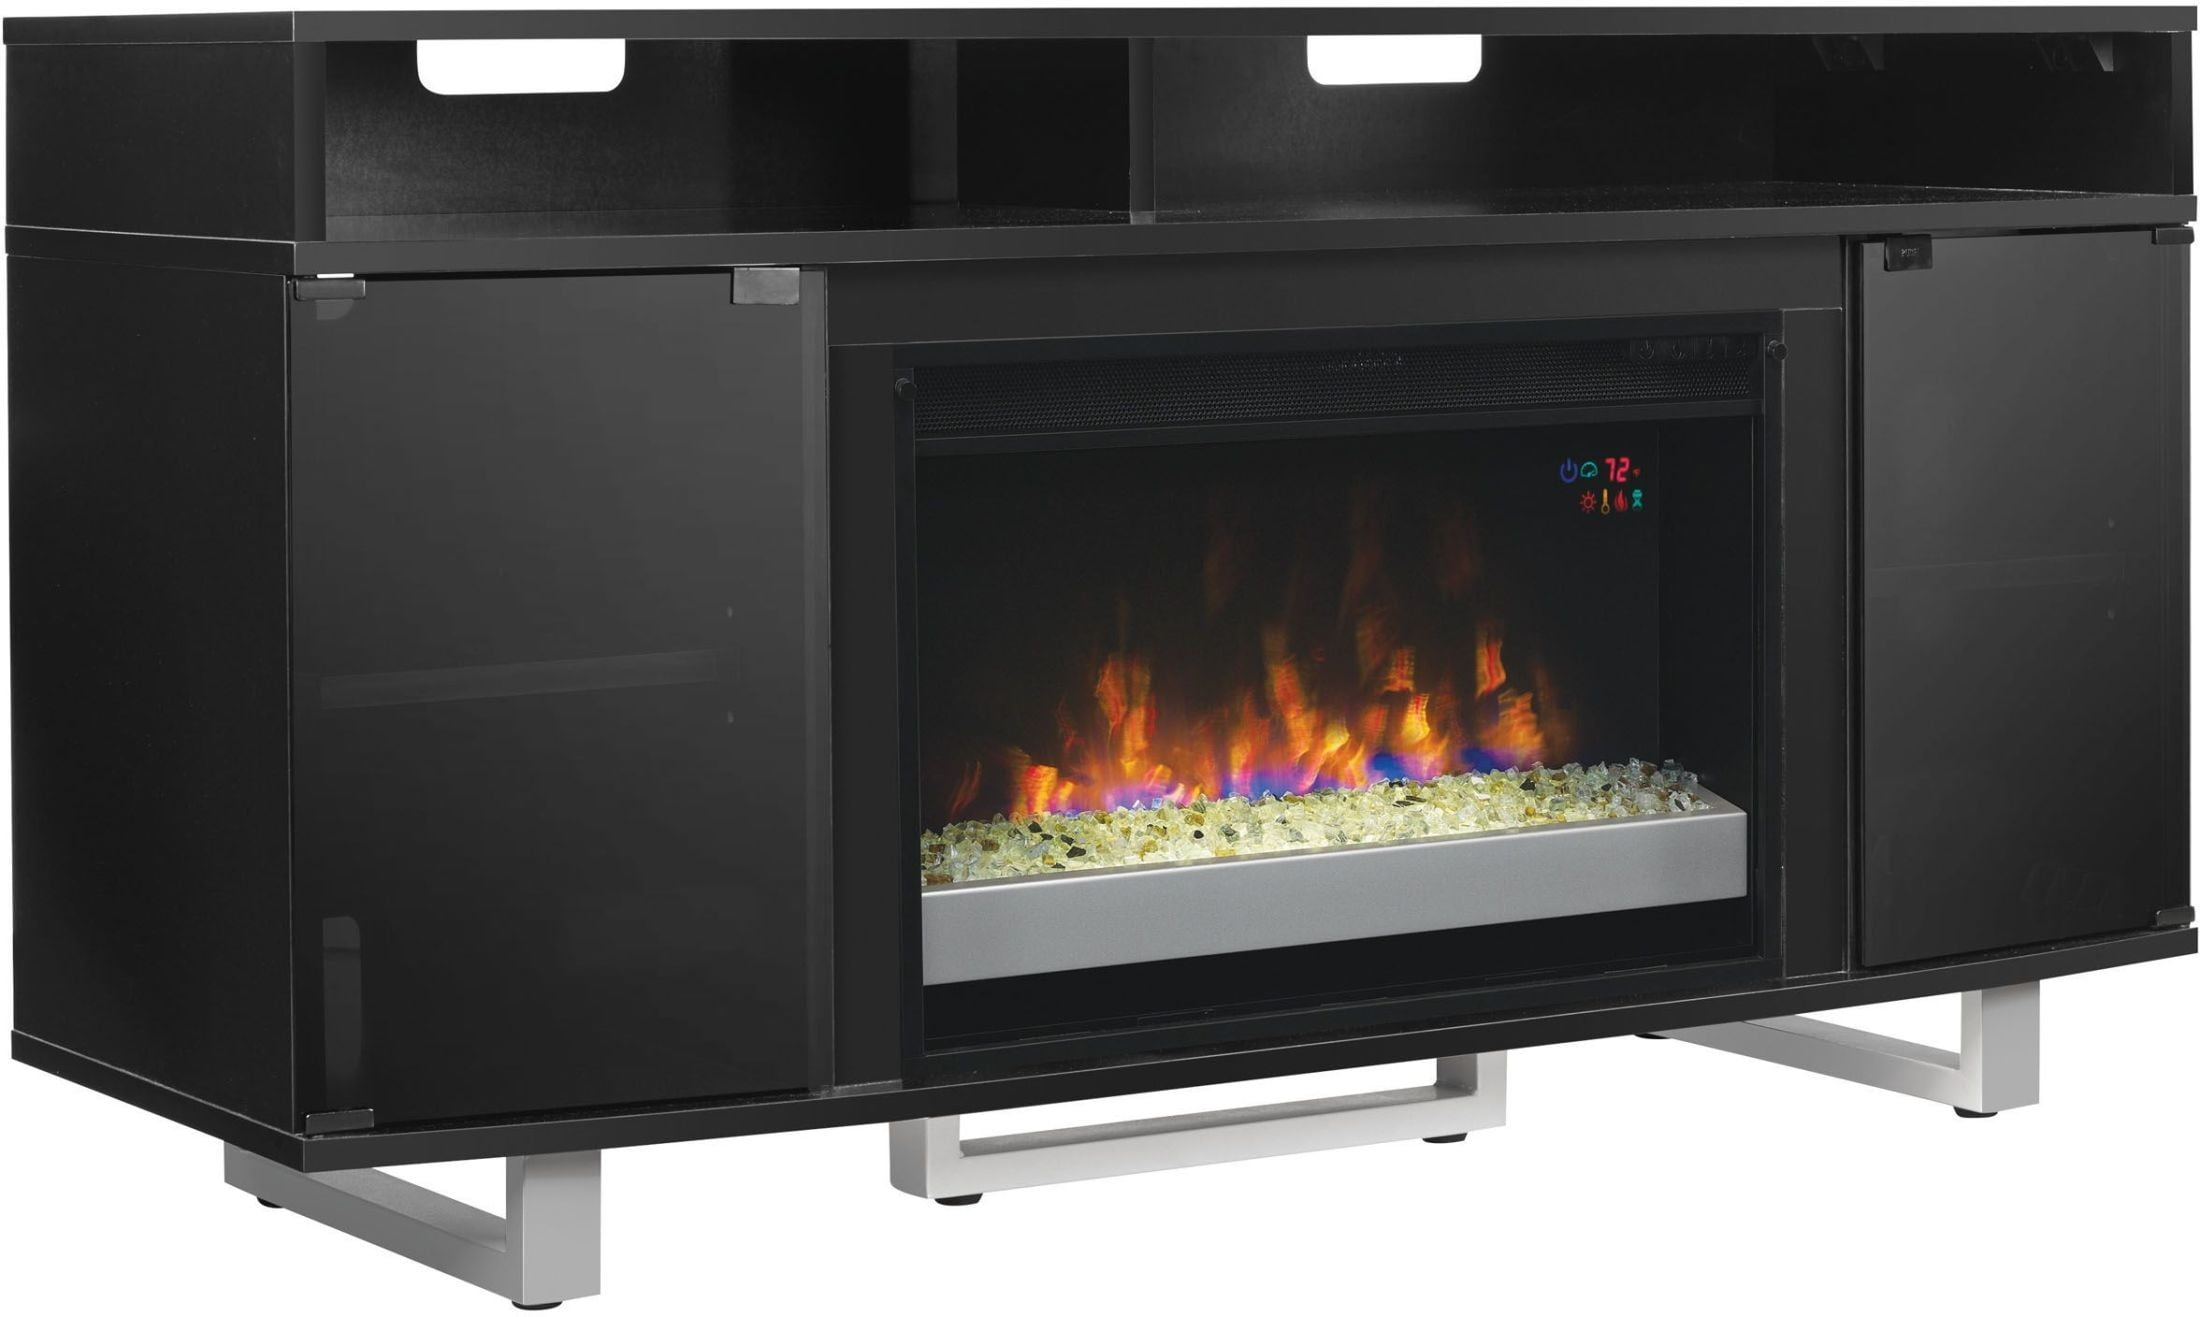 Classicflame Black Enterprise Lite Tv Stand With 26 Electric Fireplace 94042 Tco Twin Star